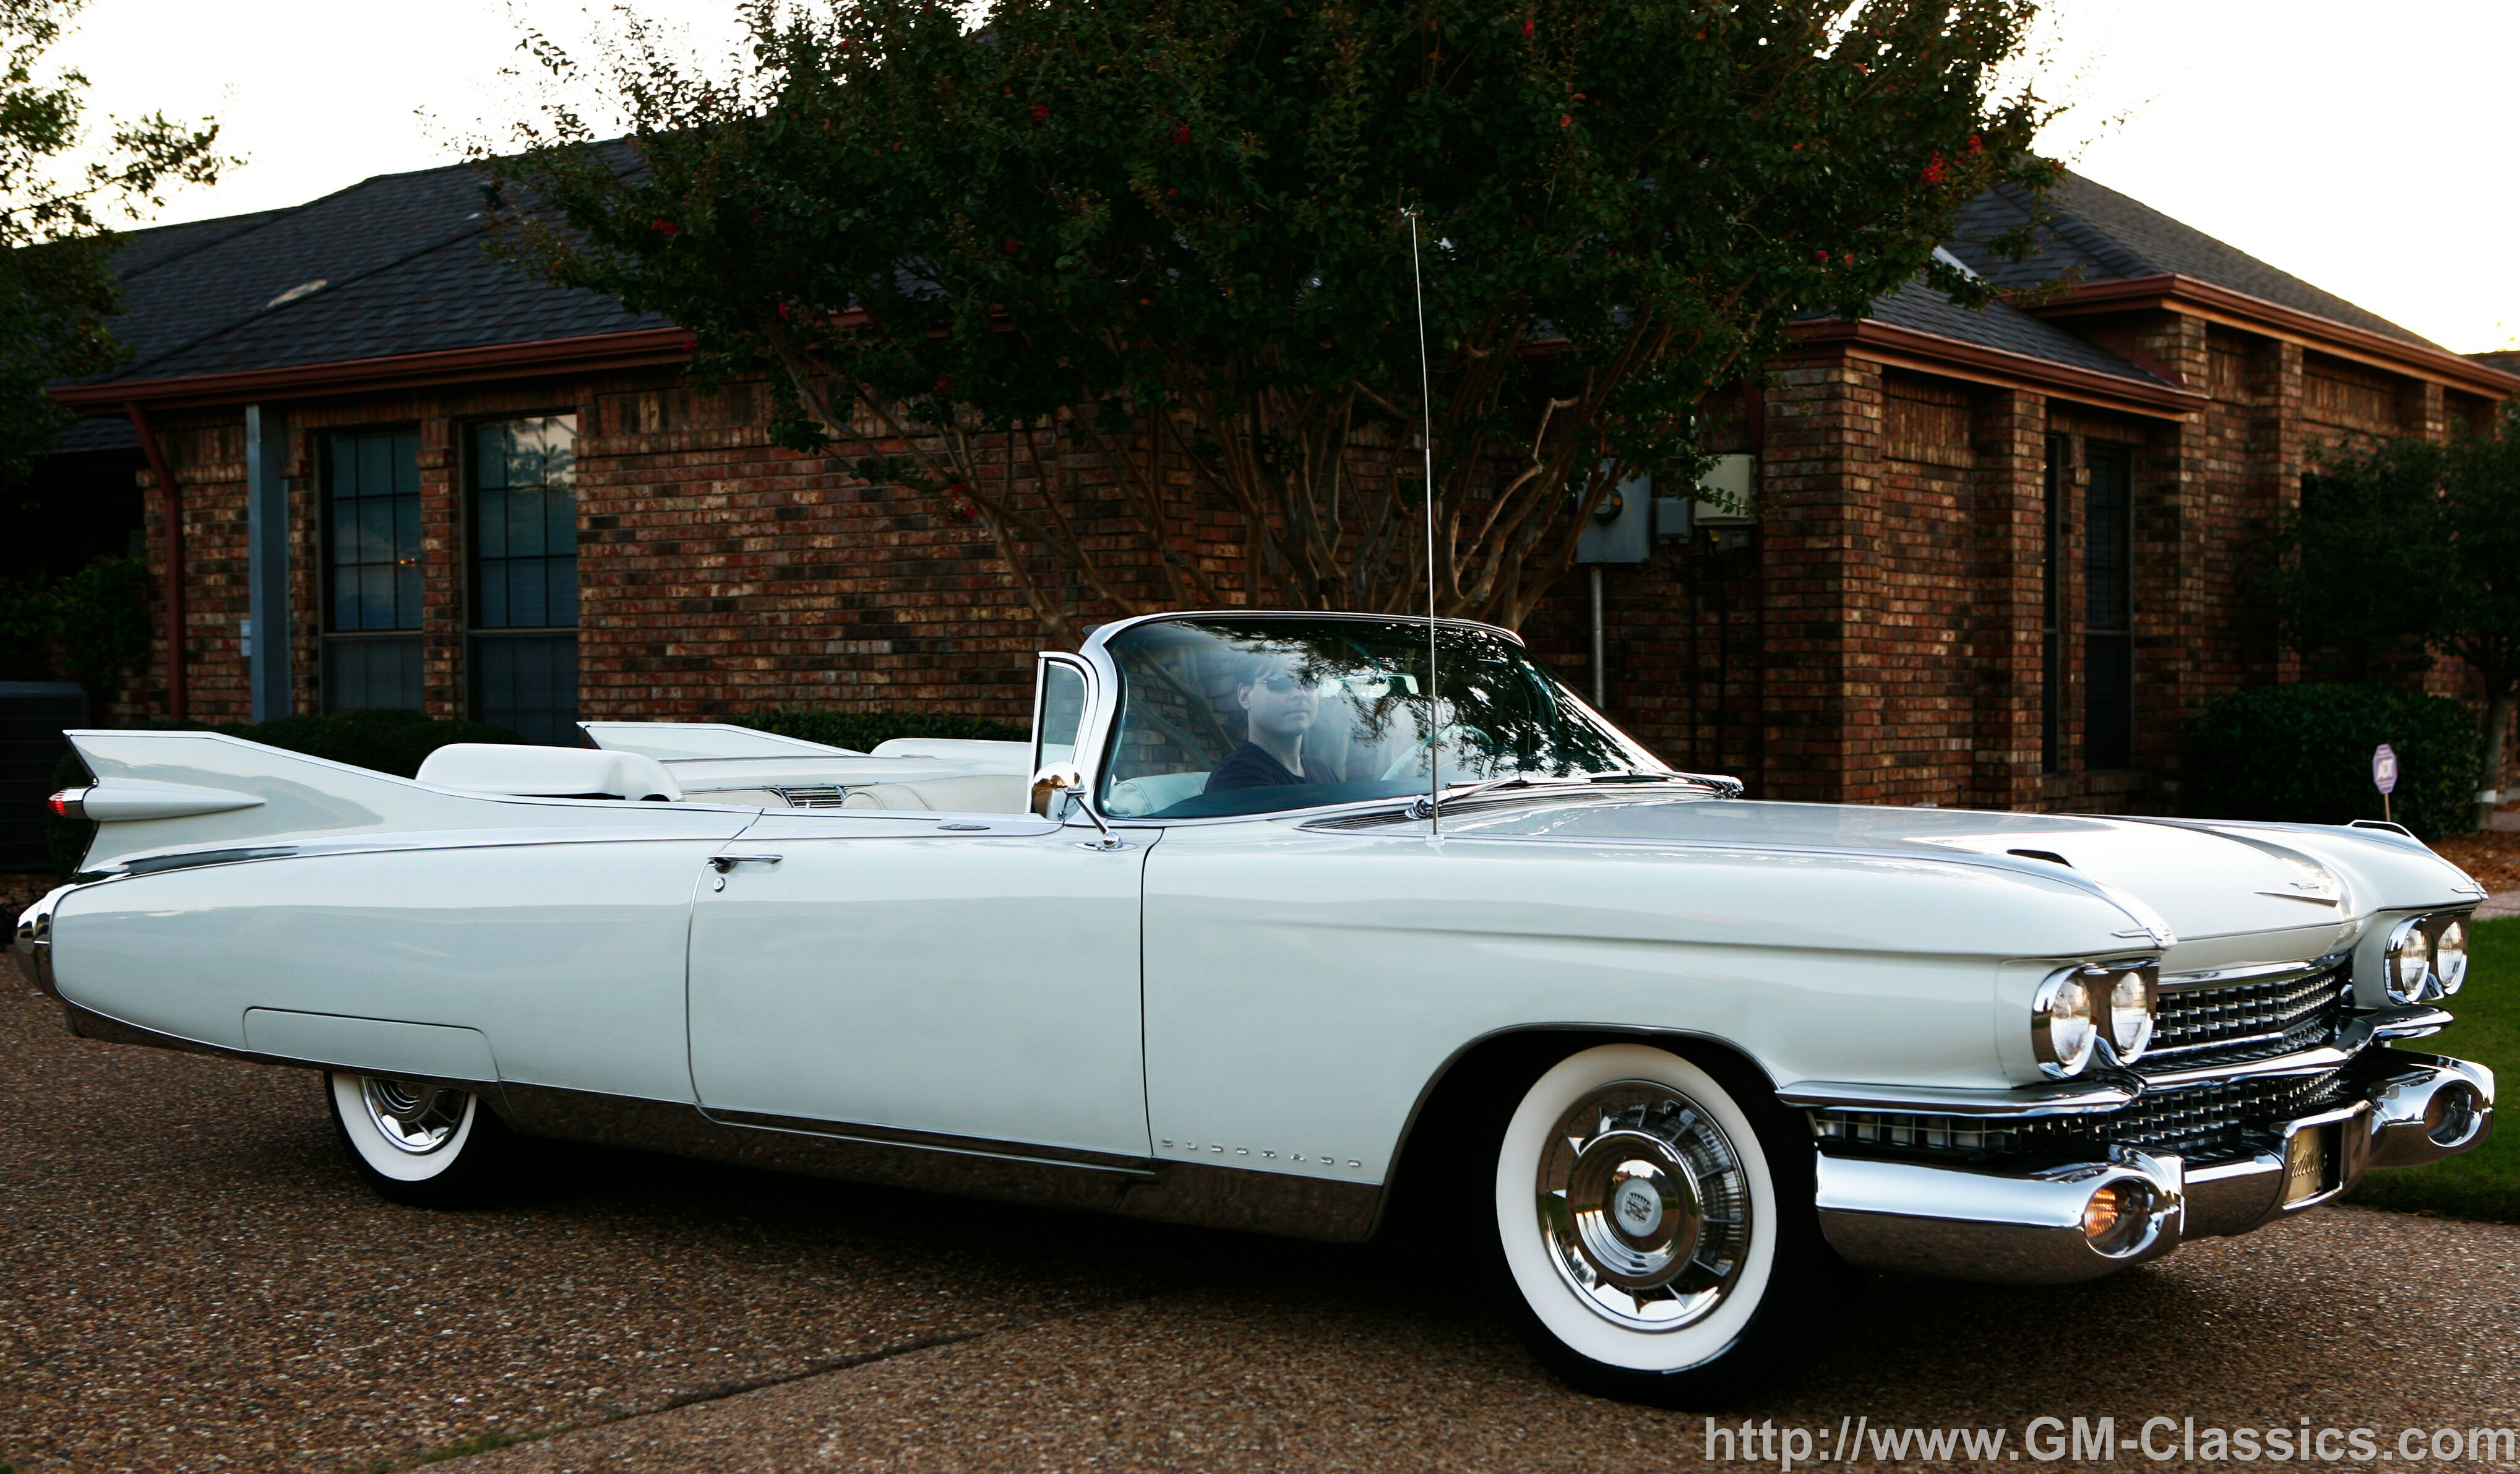 1959 cadillac eldorado convertible lawd have mercy this is just tooo pimp i have to have it wants pinterest 1959 cadillac cadillac eldorado and